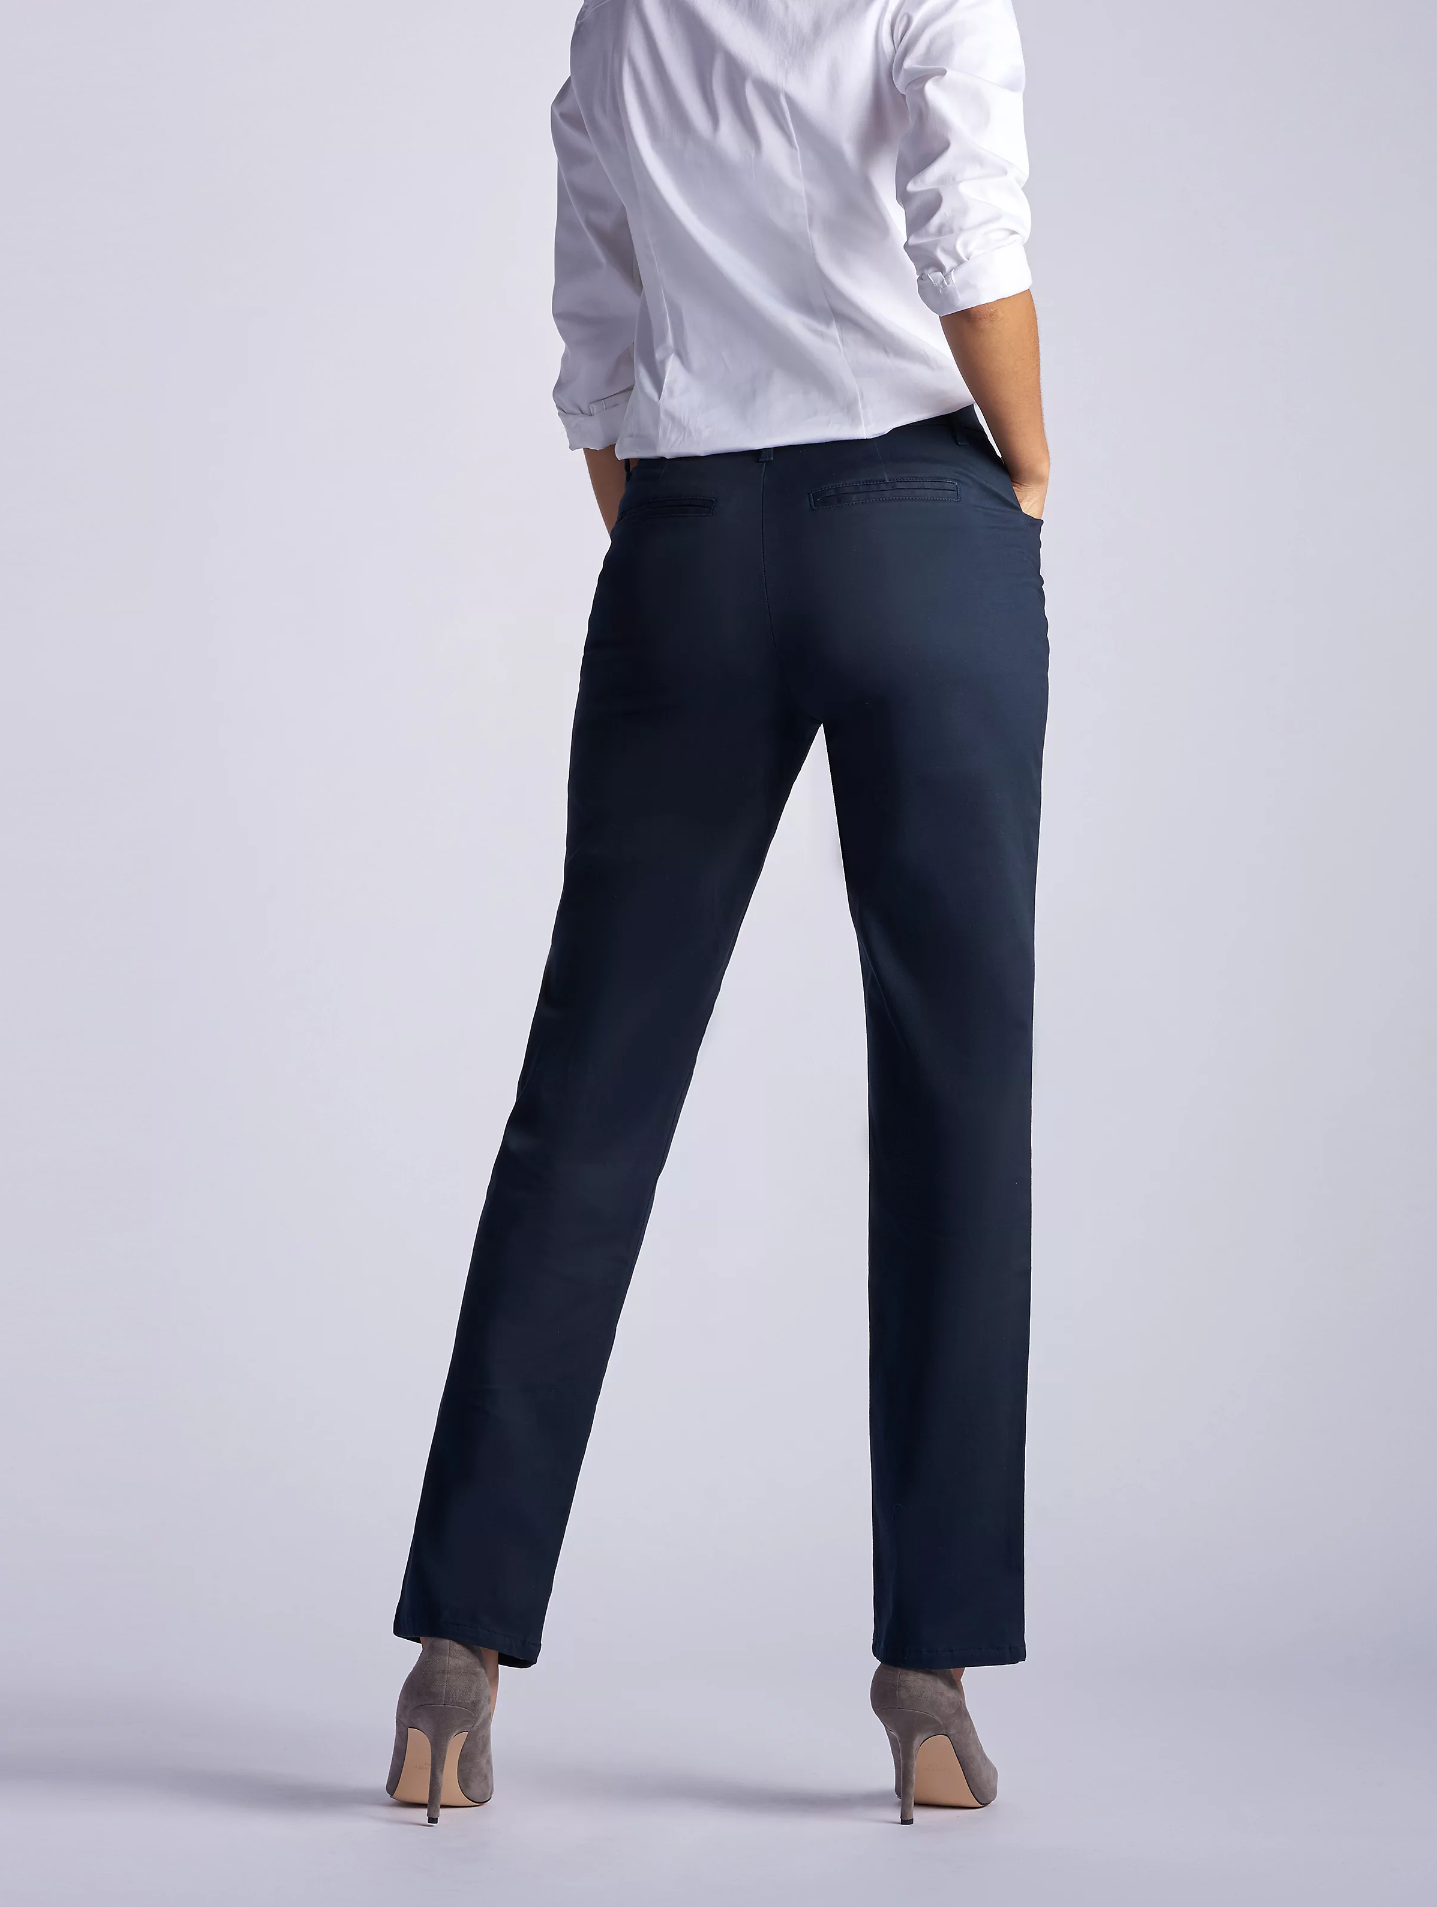 Lee® Petite Relaxed Fit Straight Leg Pants, Medium - MGworld